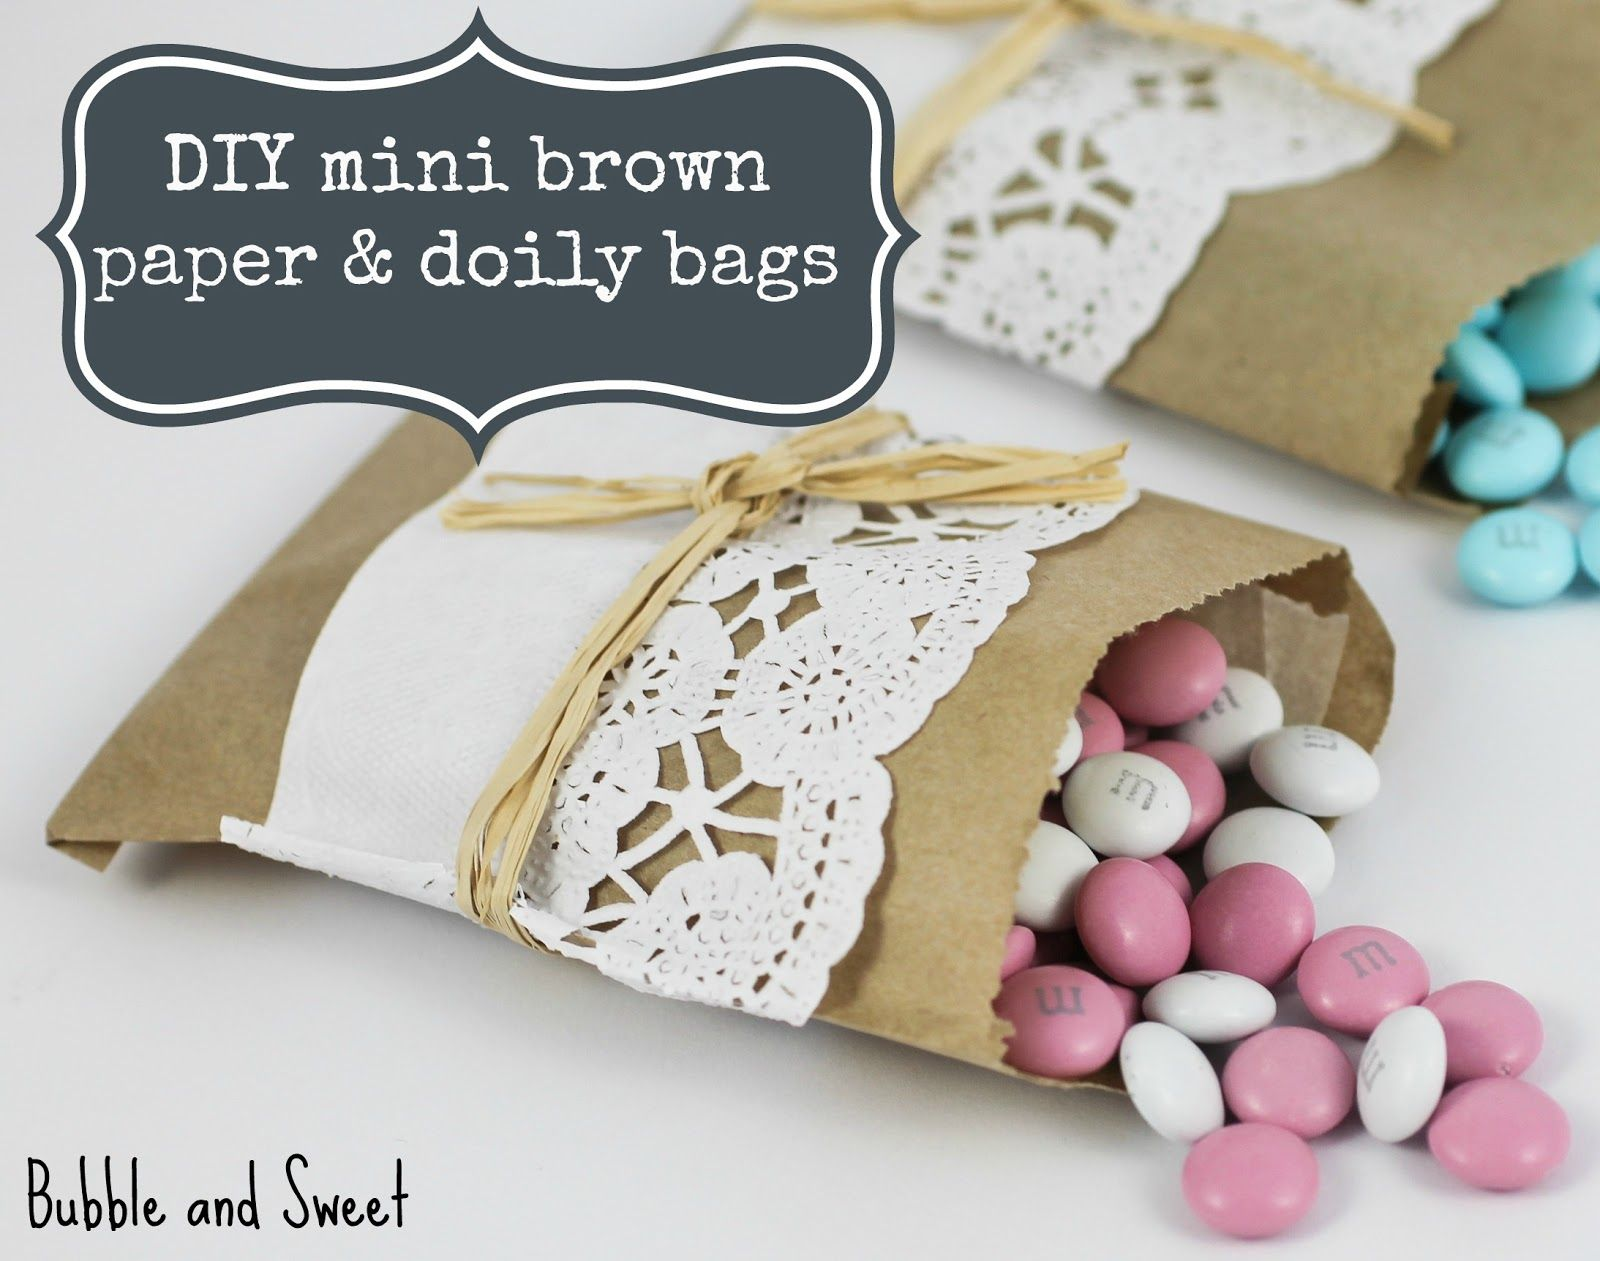 diy doily wedding favors | Bubble and Sweet: DIY mini brown paper ...